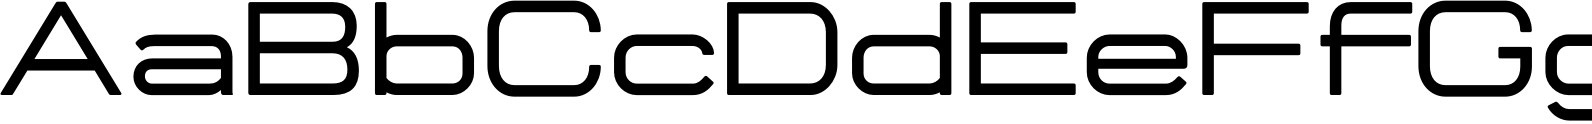 Manifold CF Extended Demi Bold Font